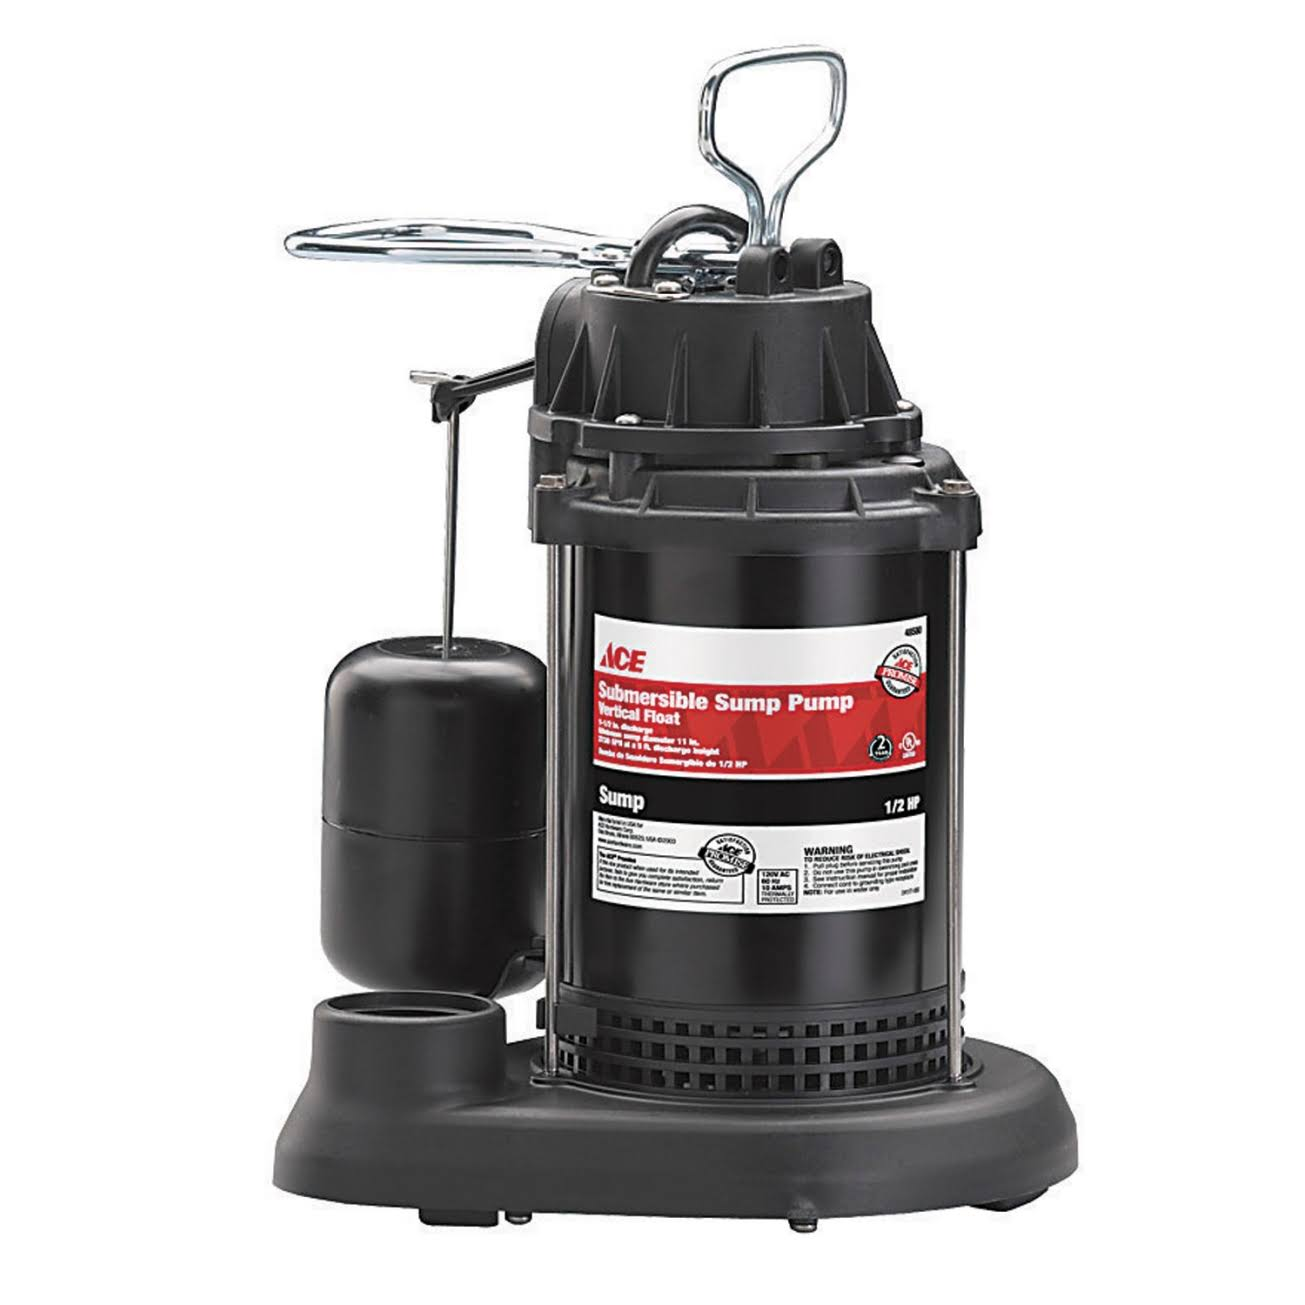 Ace Submersible Sump Pump - 1/2 HP, Vertical Float Switch